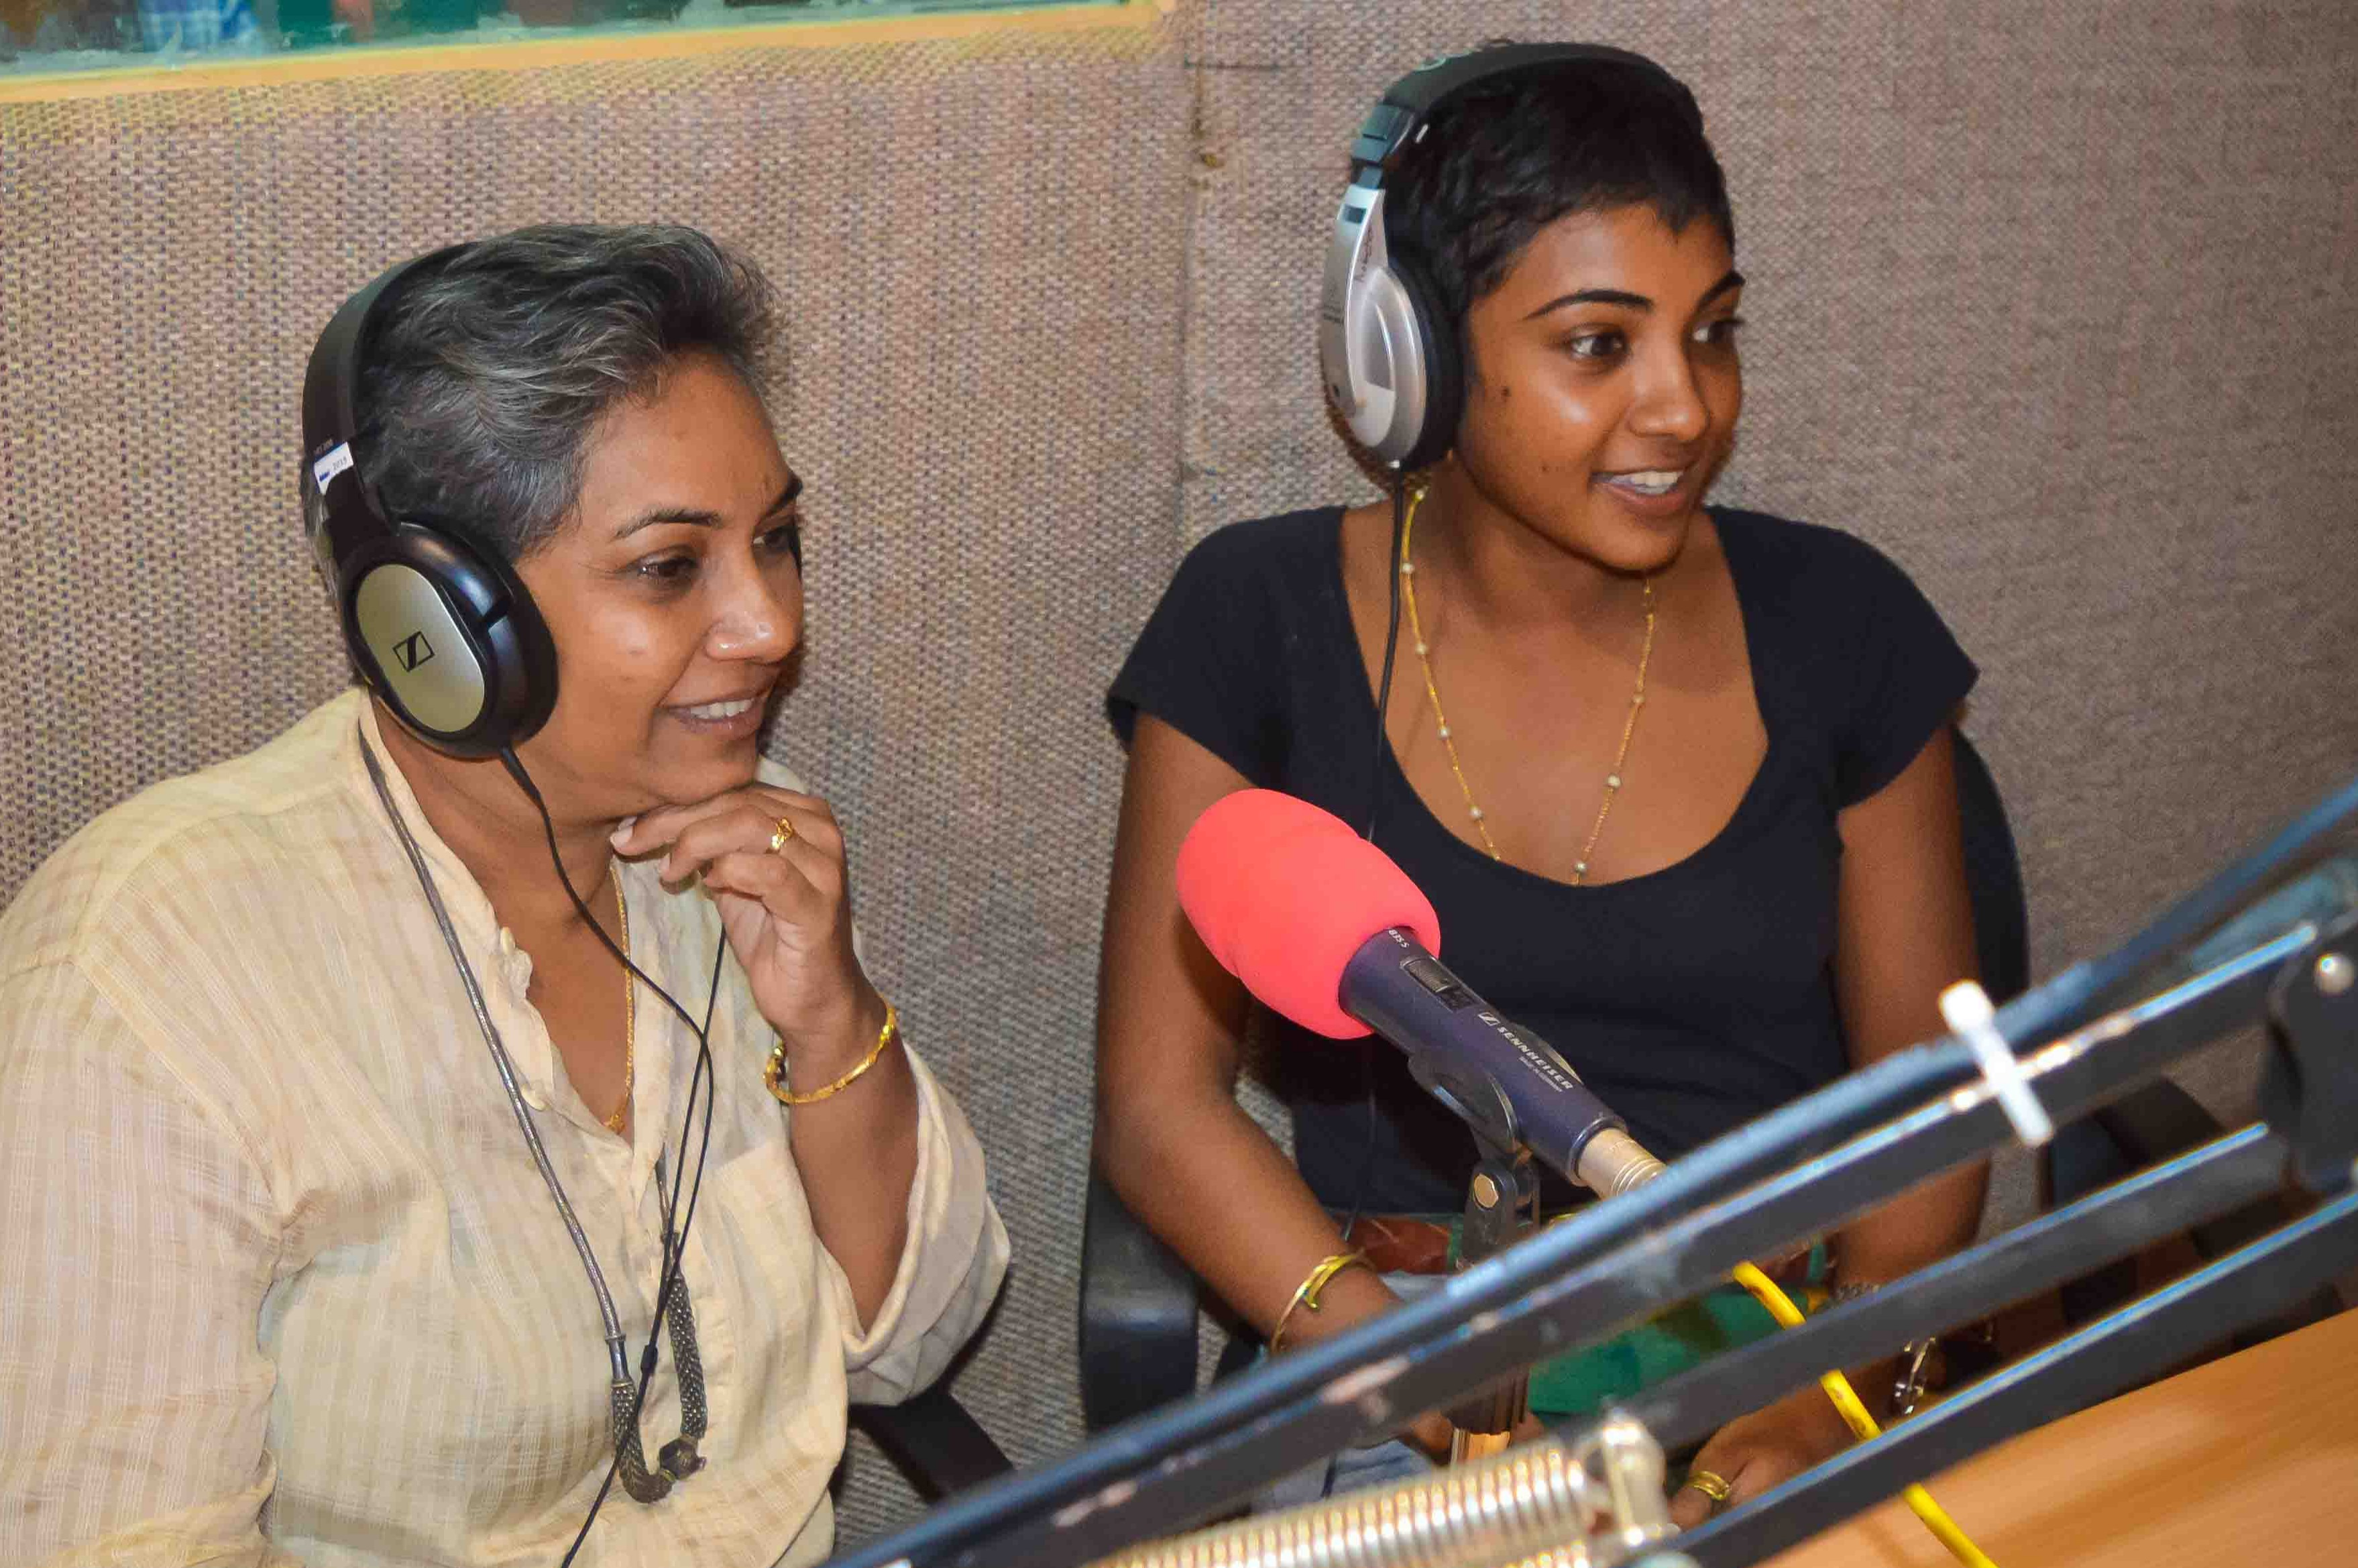 The importance of caring for the environment with Sunela Jayewardene & Savera Weerasinghe